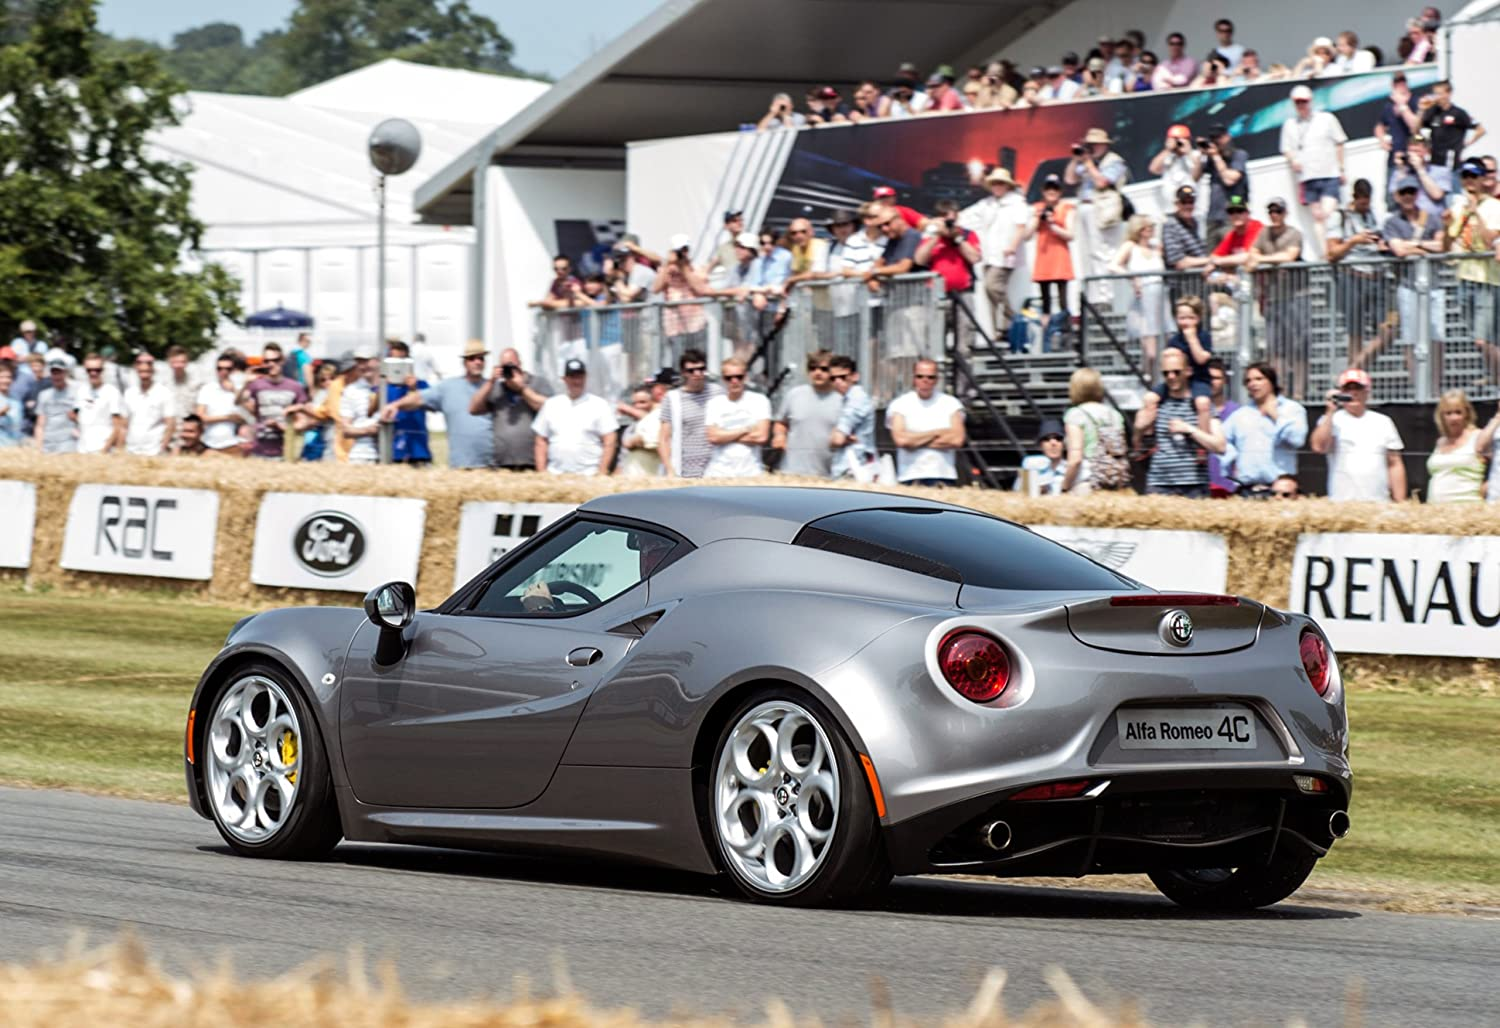 """Alfa Romeo 4C Goodwood Festival of Speed (2013) Car Art Poster Print on 10 mil Archival Satin Paper Silver Rear Side Motion View 36""""x24"""""""